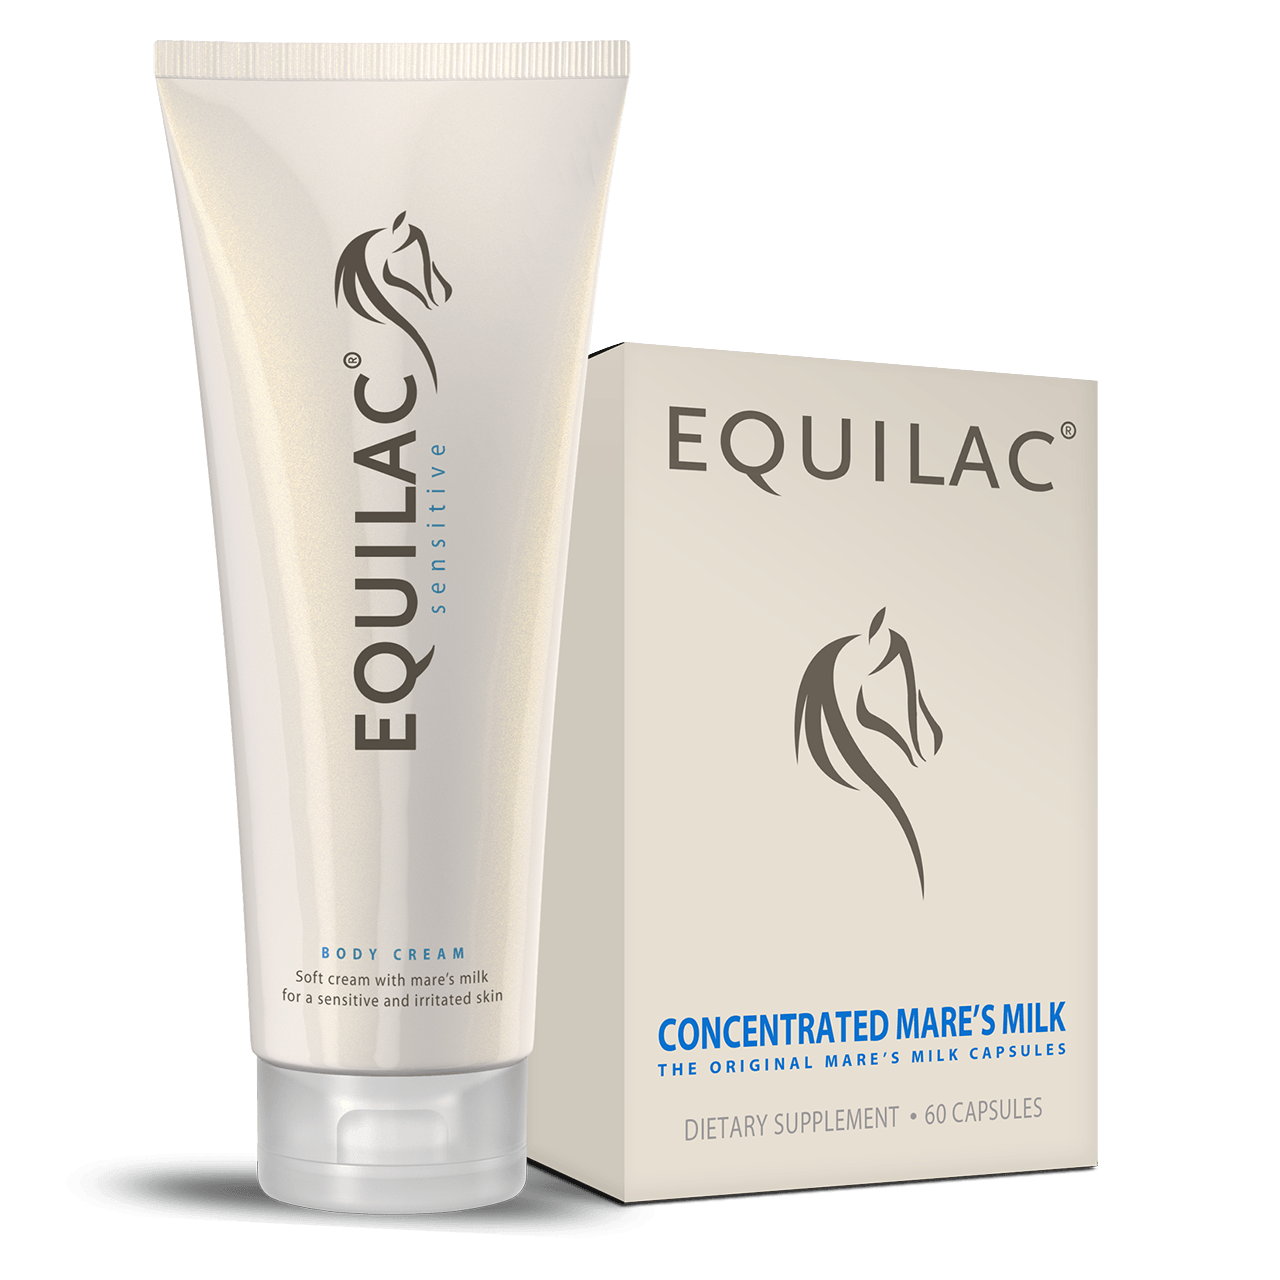 Equilac Mare's Milk